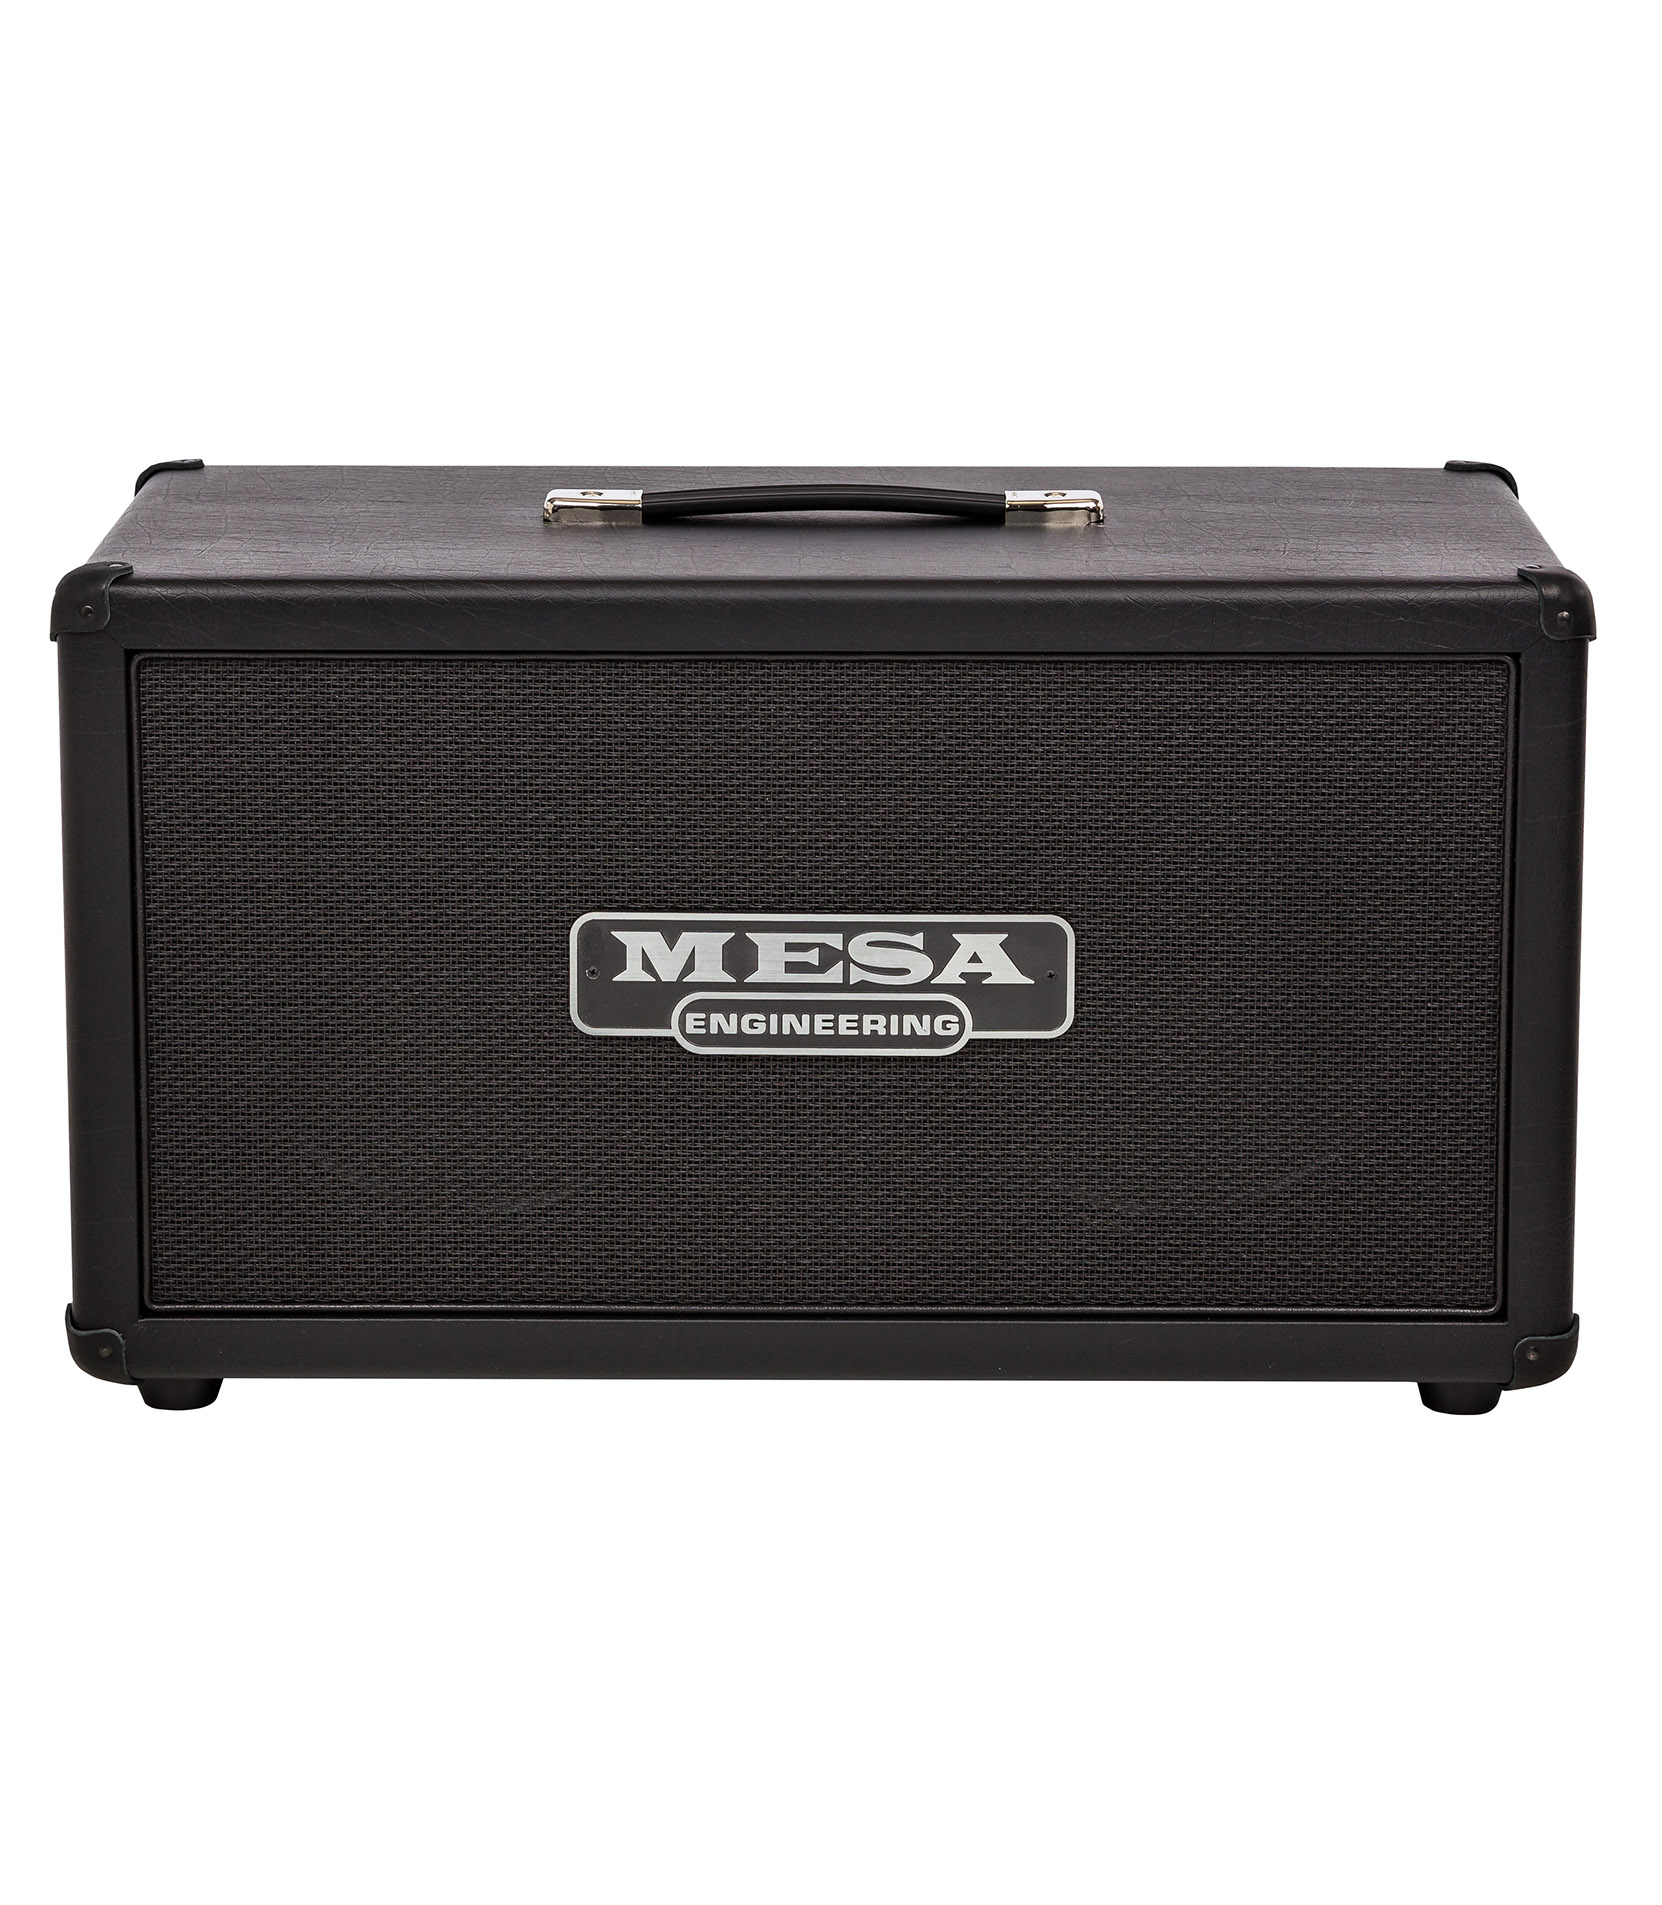 Mesaboogie - 2x12 Rectifier Compact Cabinet - Melody House Musical Instruments